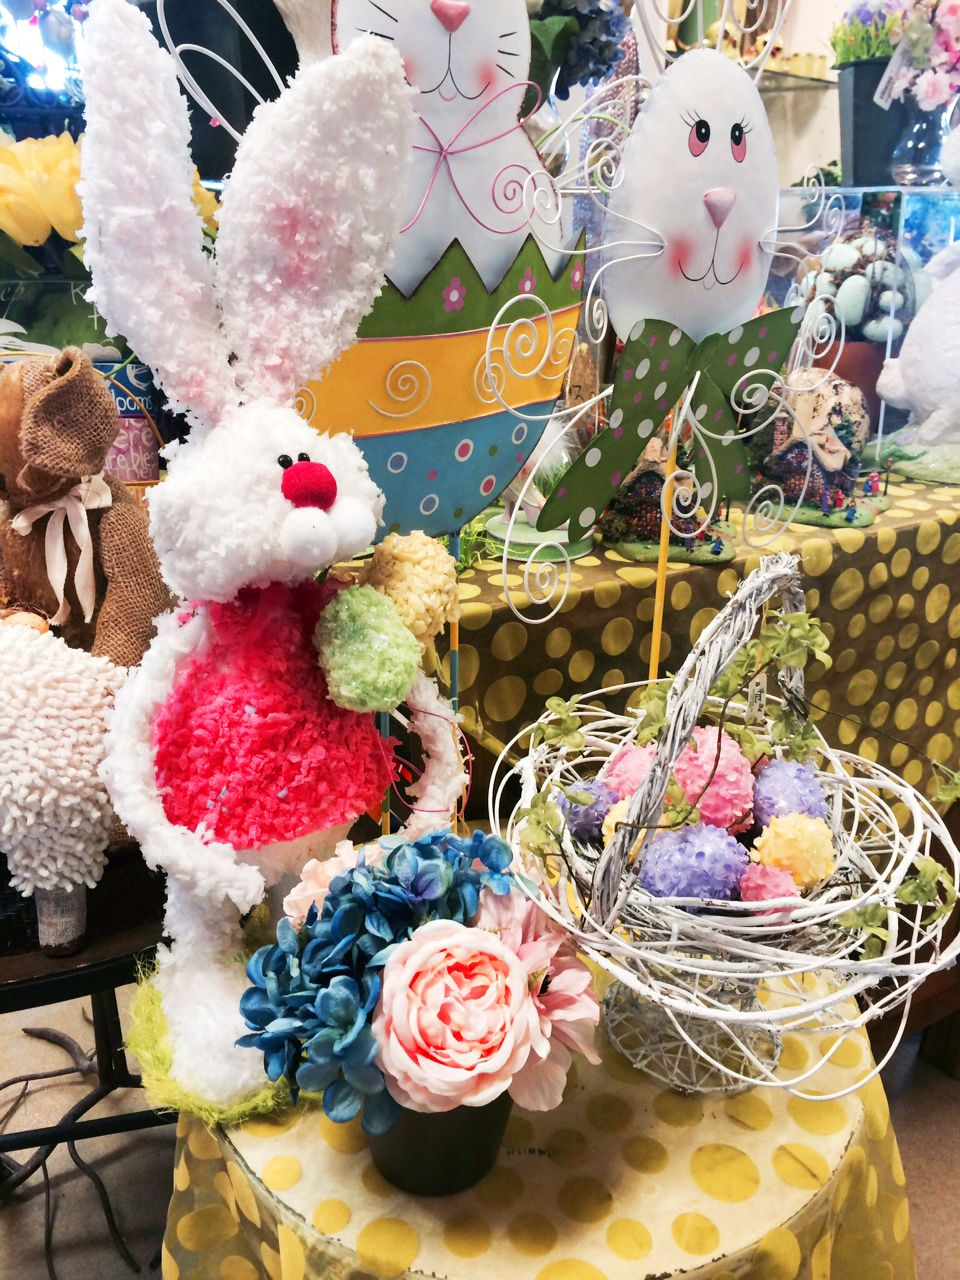 Easter bunny gift shop by rosemary duff florist in escondido ca easter negle Choice Image